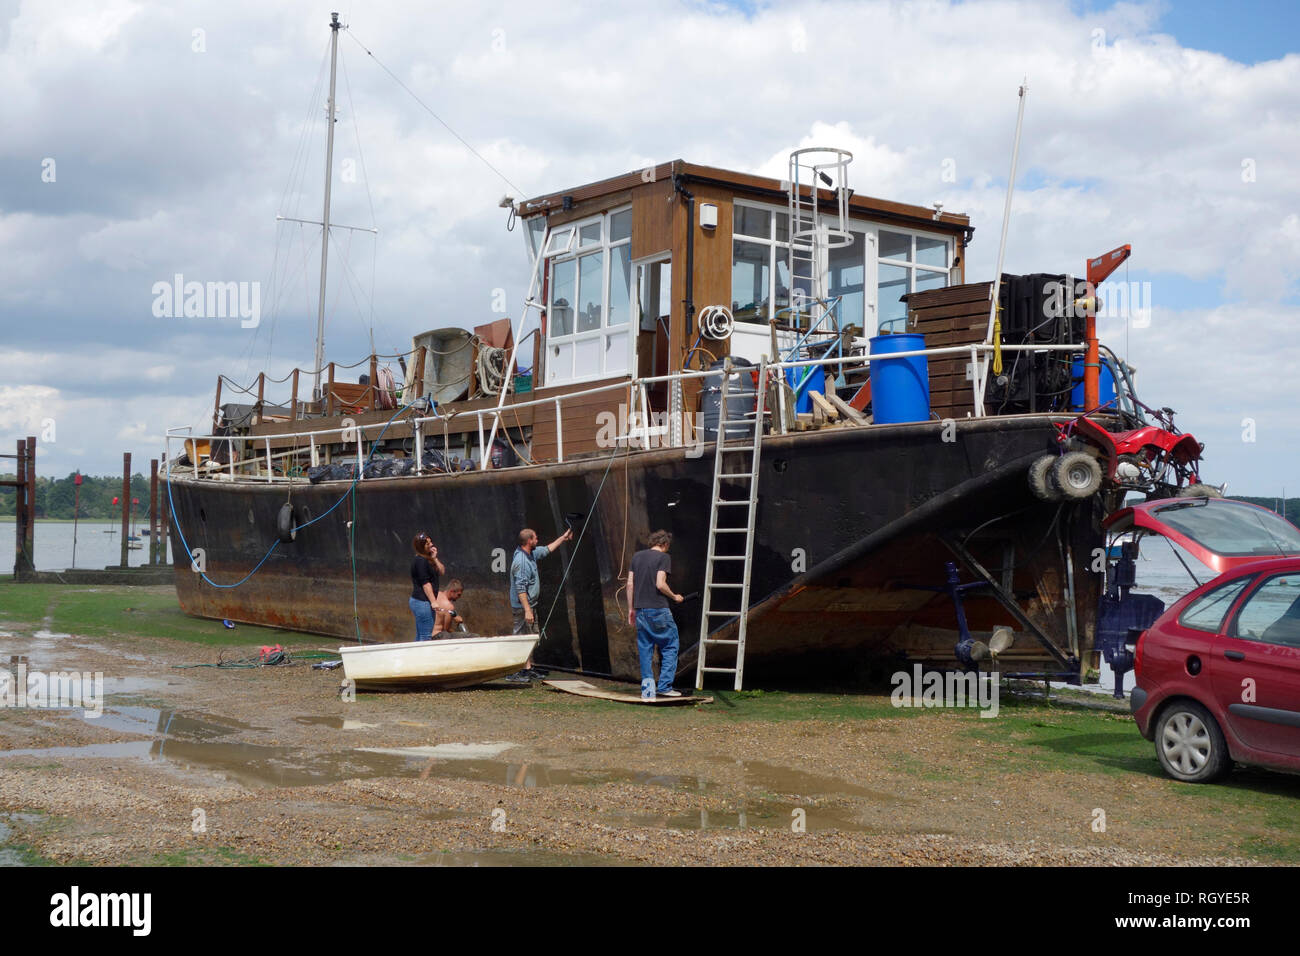 People painting the hull of a barge at Pin Mill, Suffolk - Stock Image